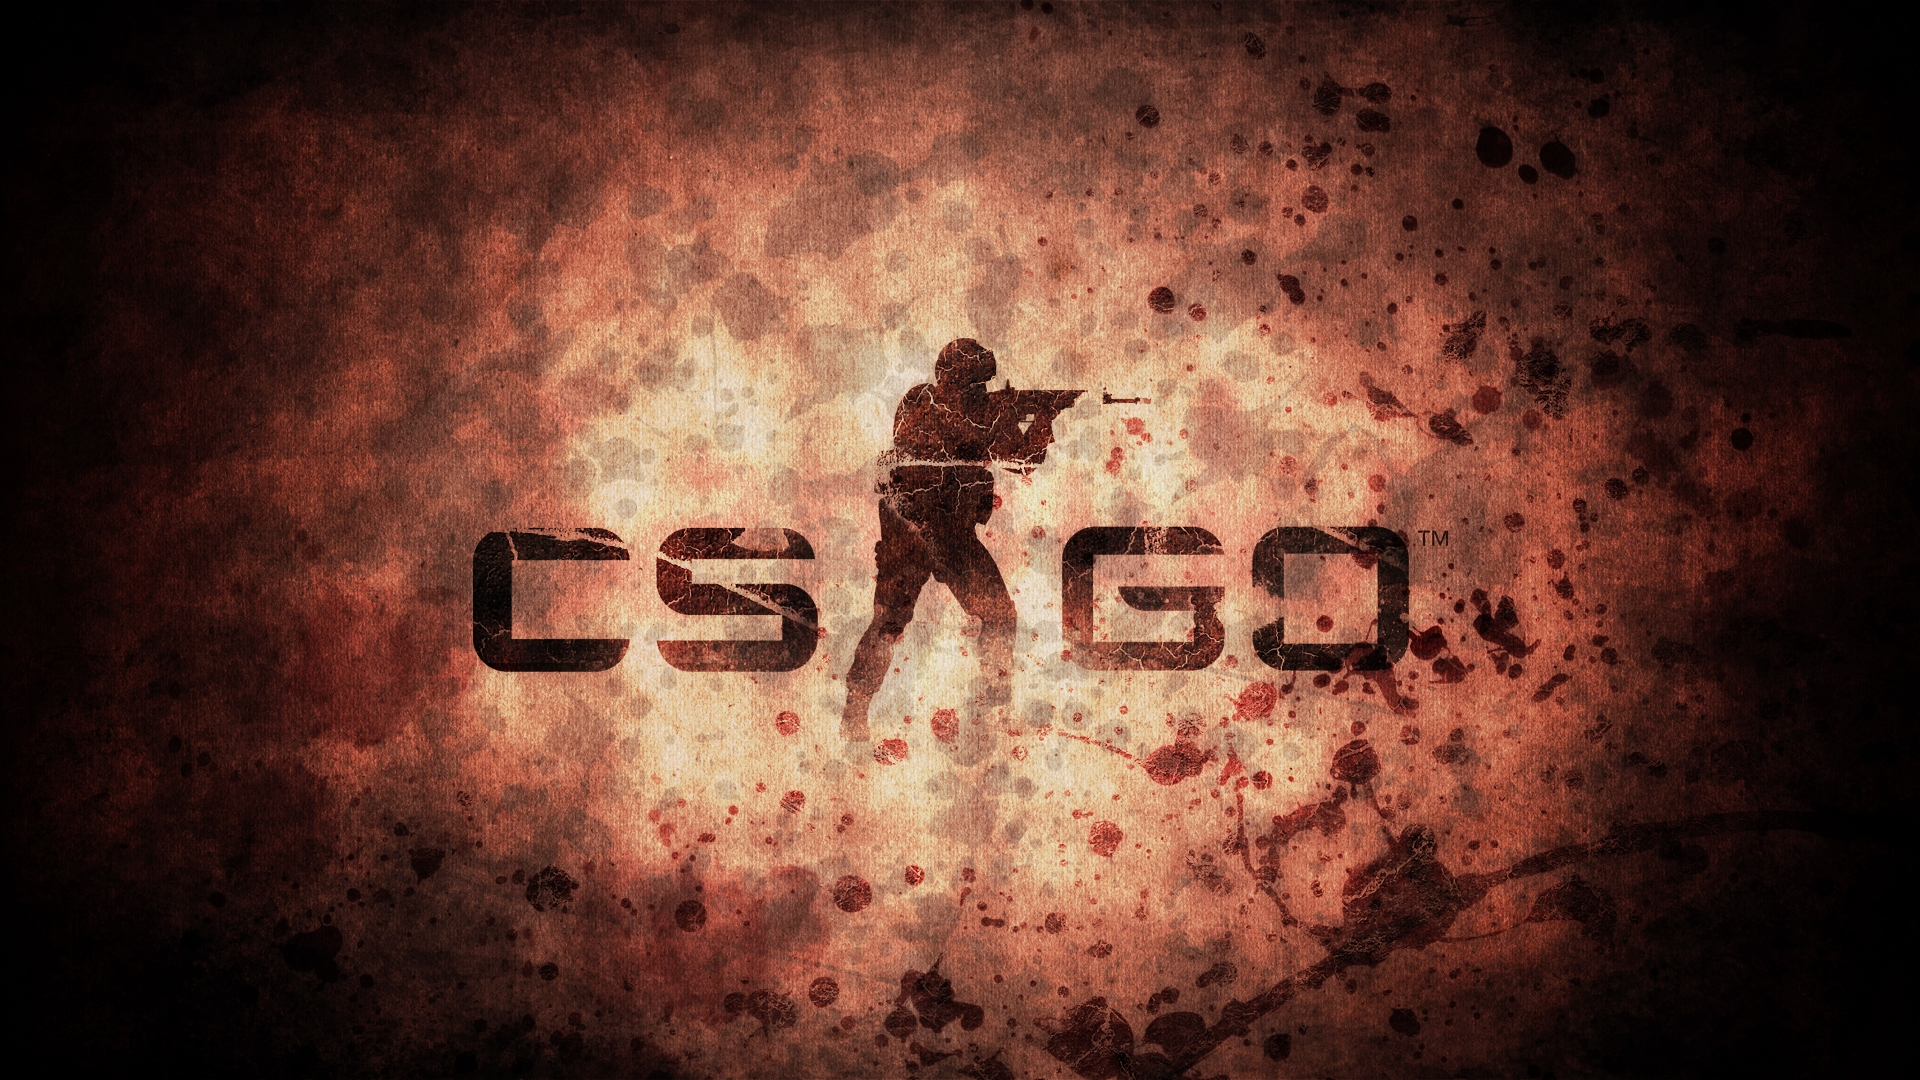 how to bring up console in cs go